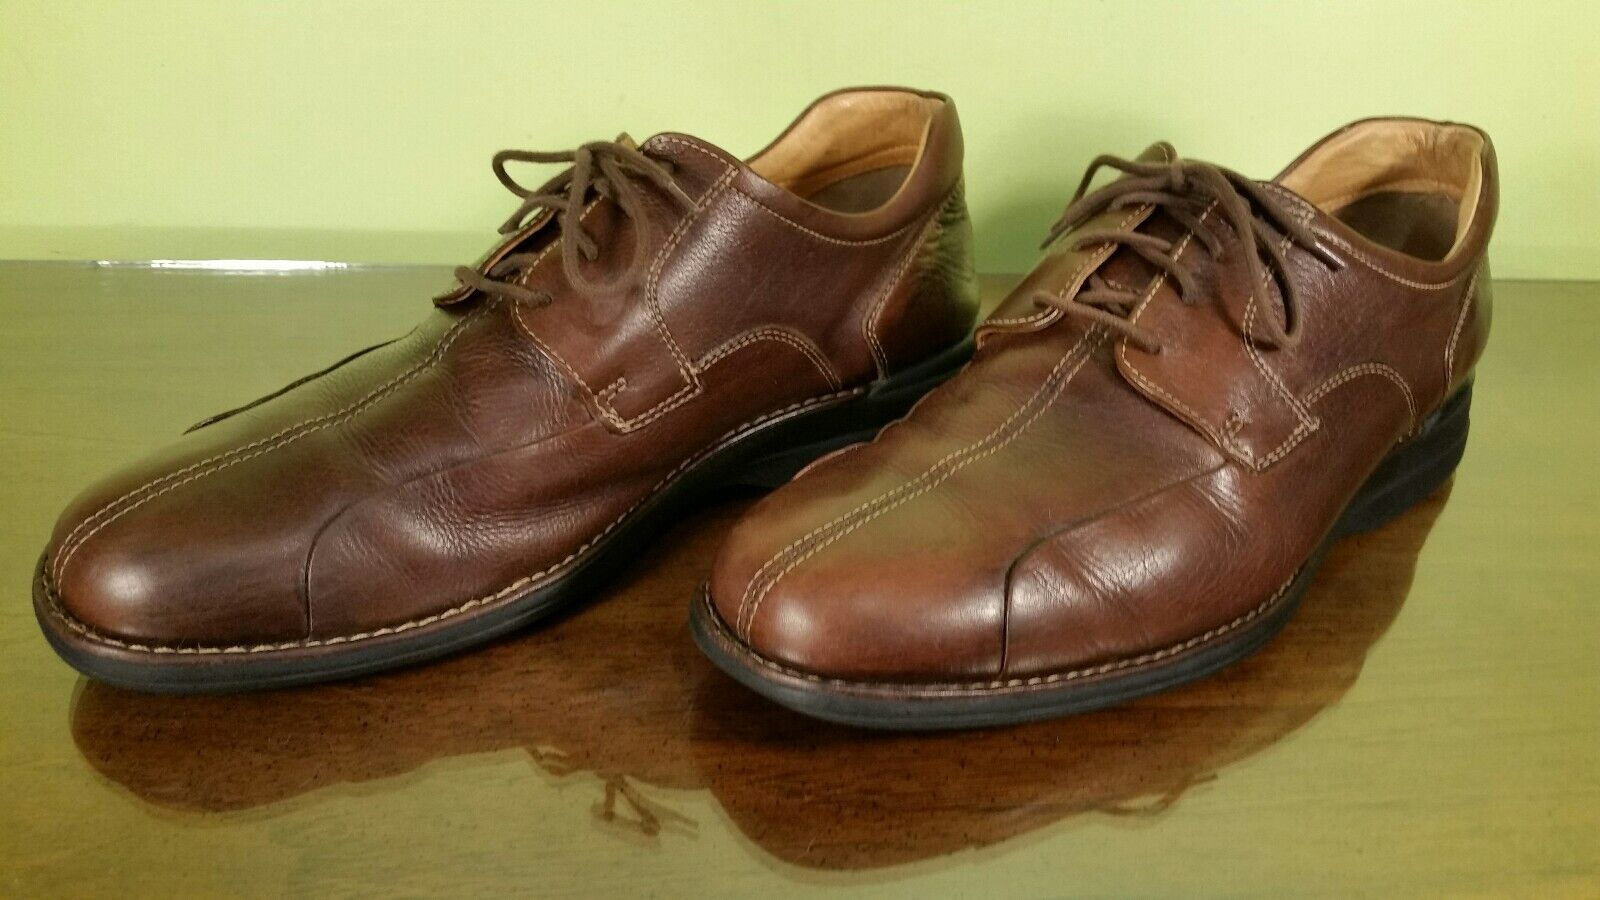 Johnston Leather Murphy Brown Split Toe Leather Johnston Oxford Dress Shoes Mens 12M Brazil af0bc3